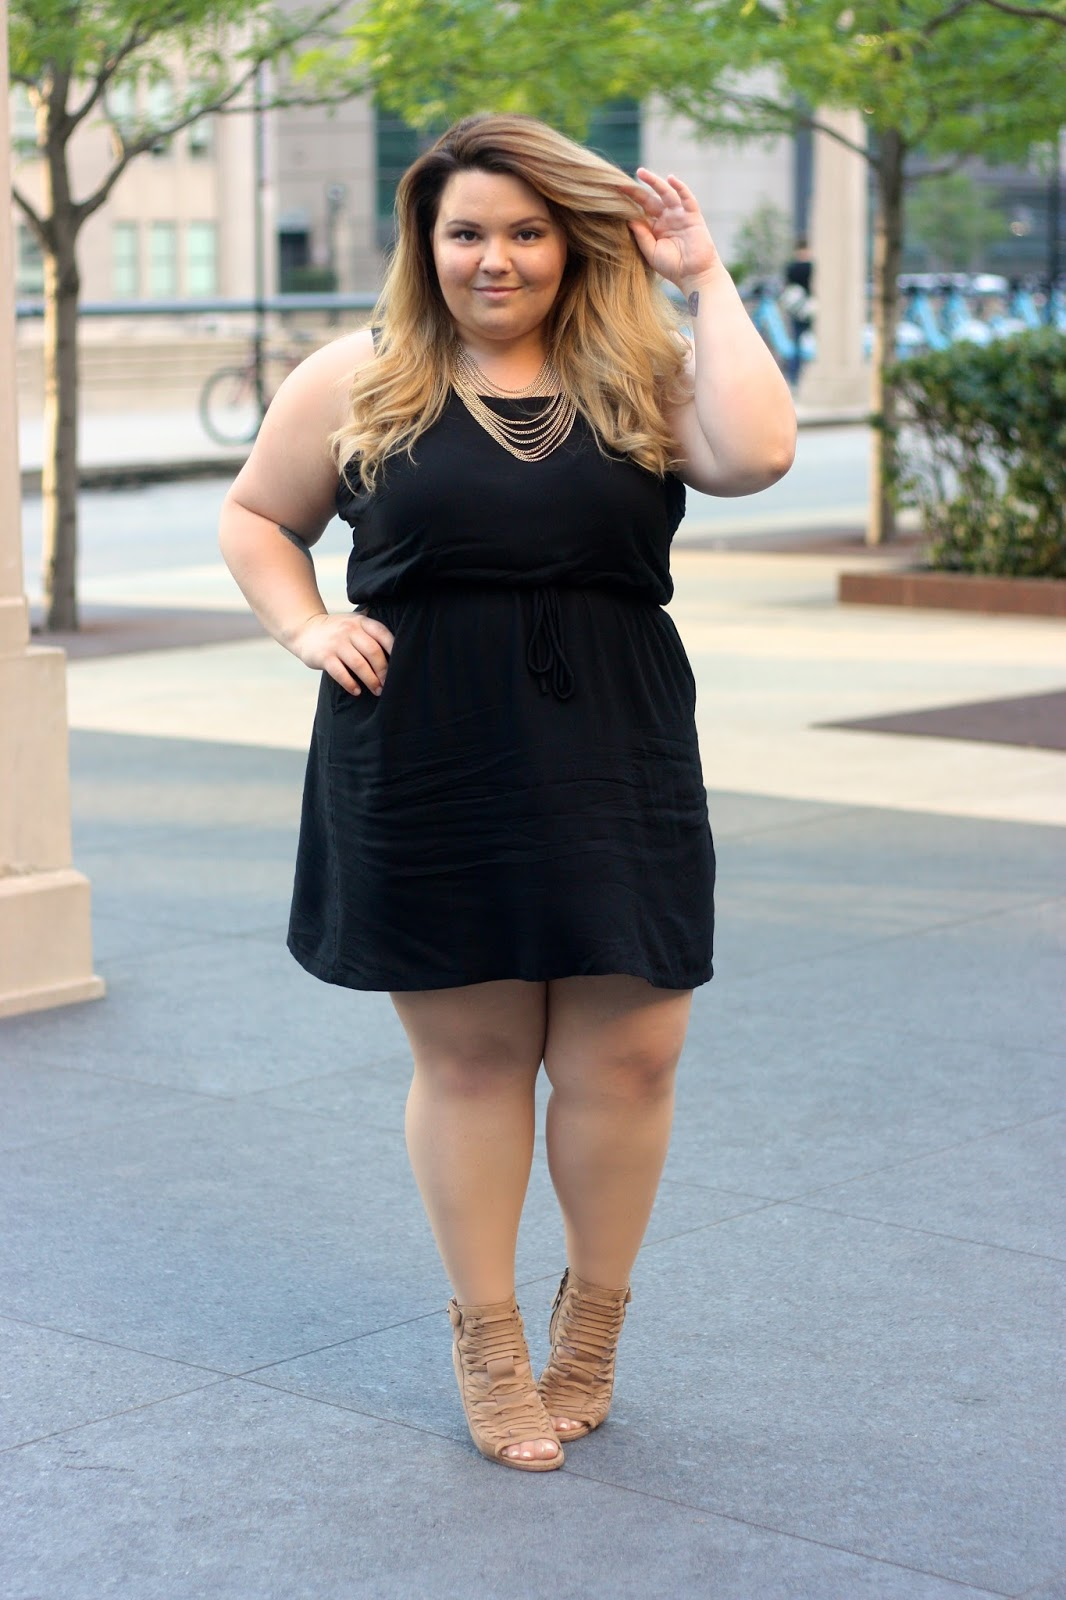 little black dress, plus size LBD, natalie craig, natalie in the city, plus size fashion blogger, chicago blogger, embrace my body. dolce vita wedges, chicago